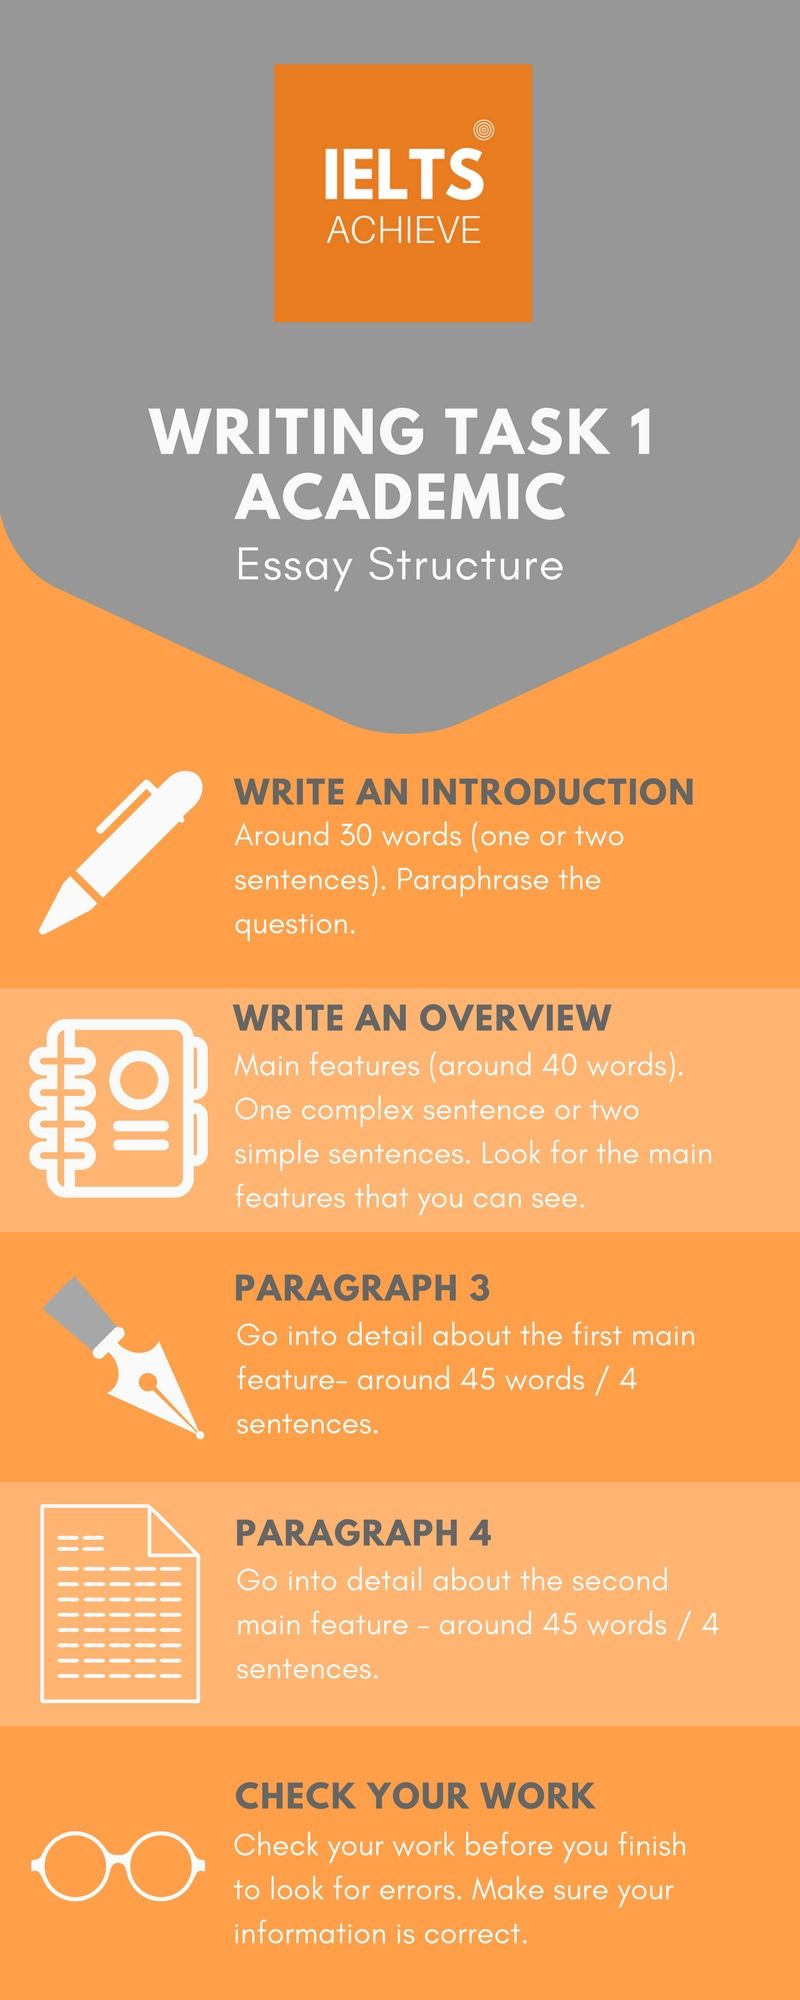 How To Create A Successful Writing Task 1 Essay Structure